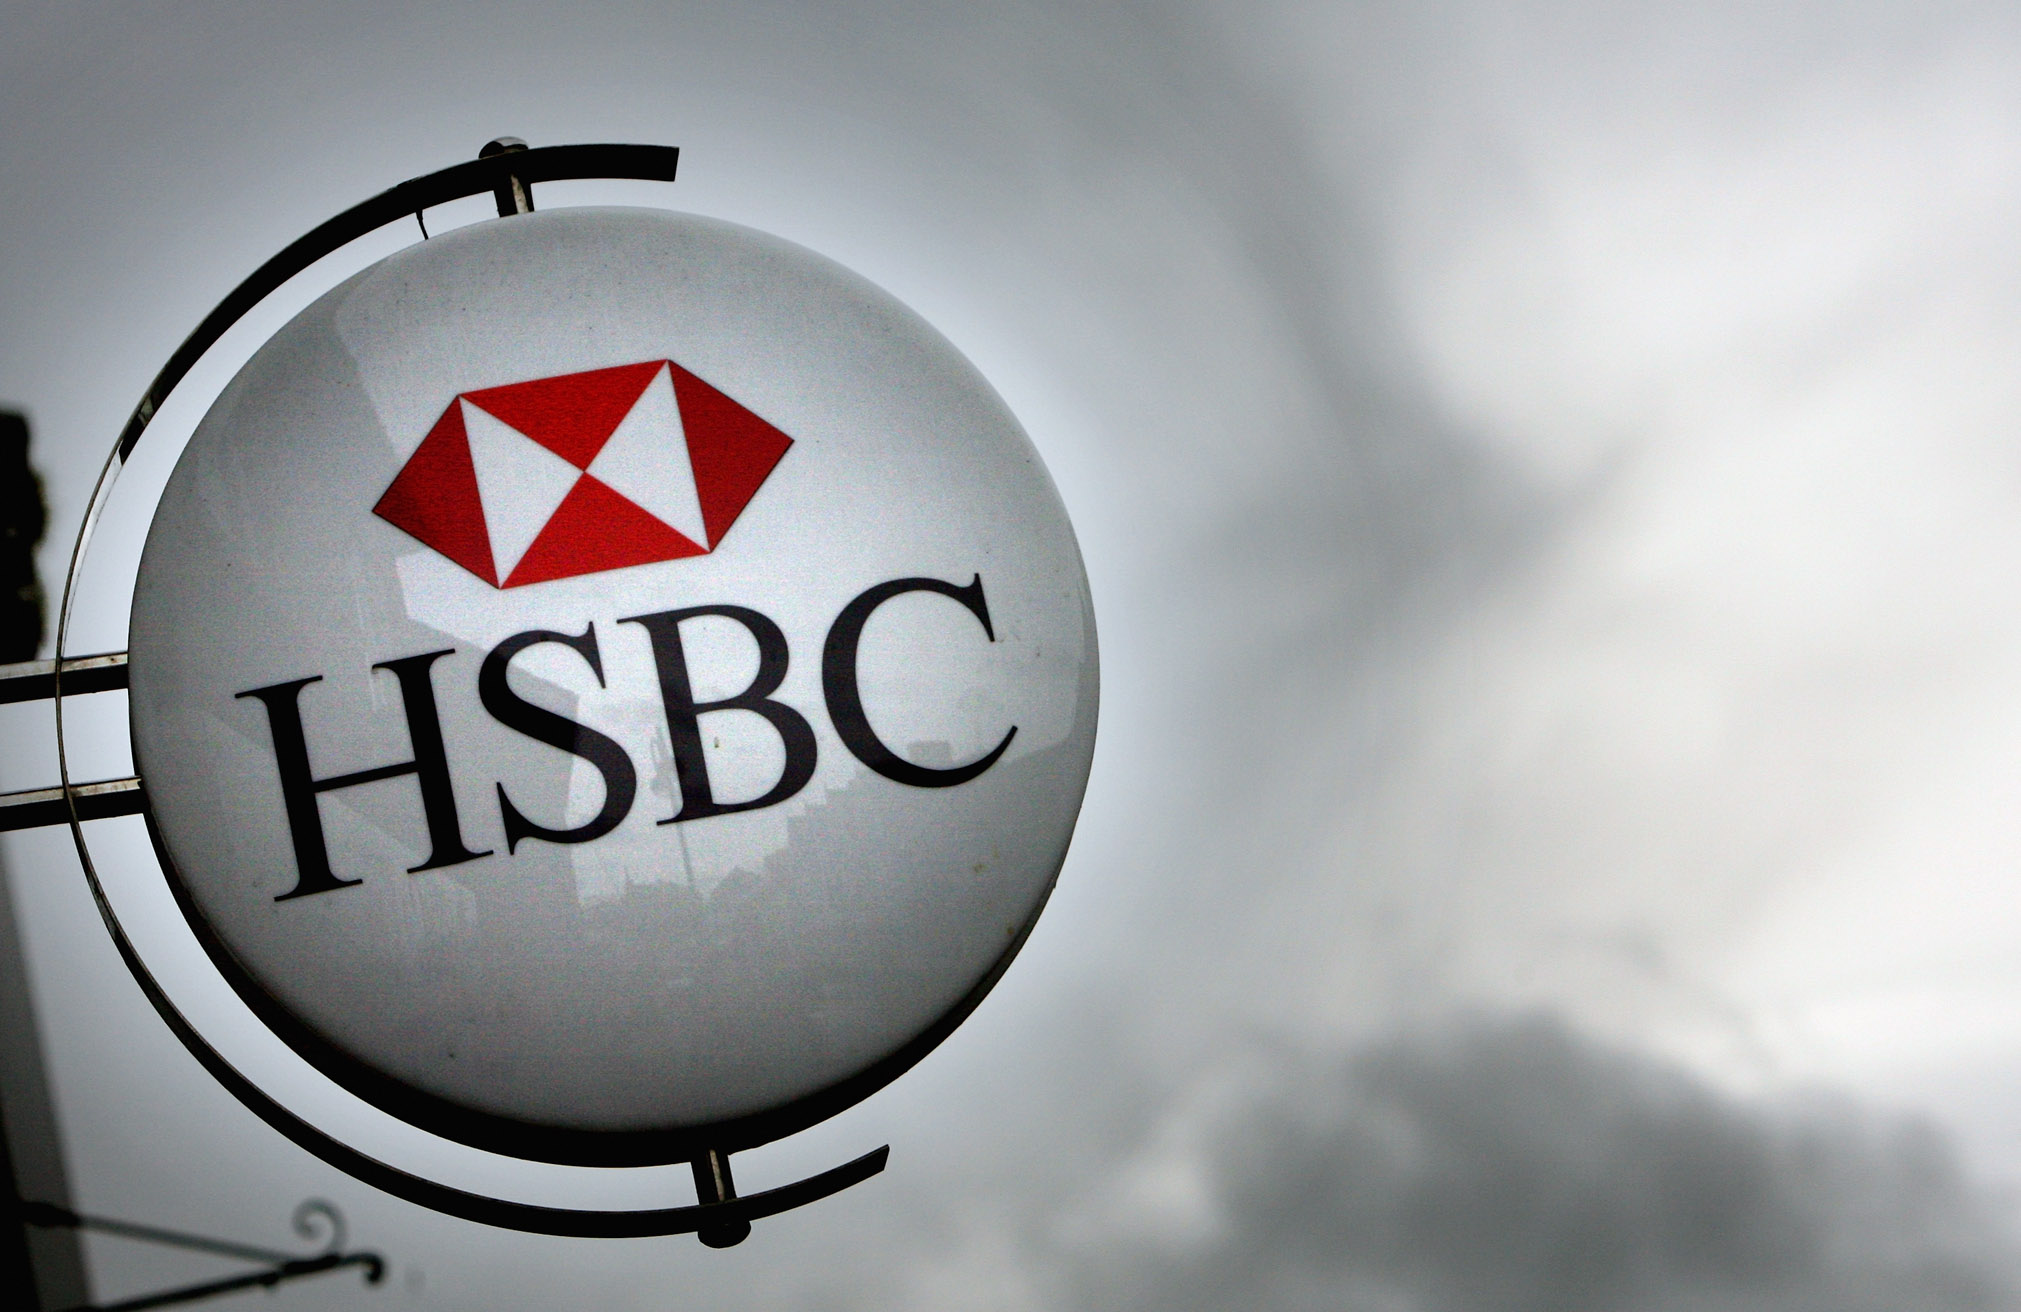 The HSBC logo is displayed in Street, England, on March 3, 2008.